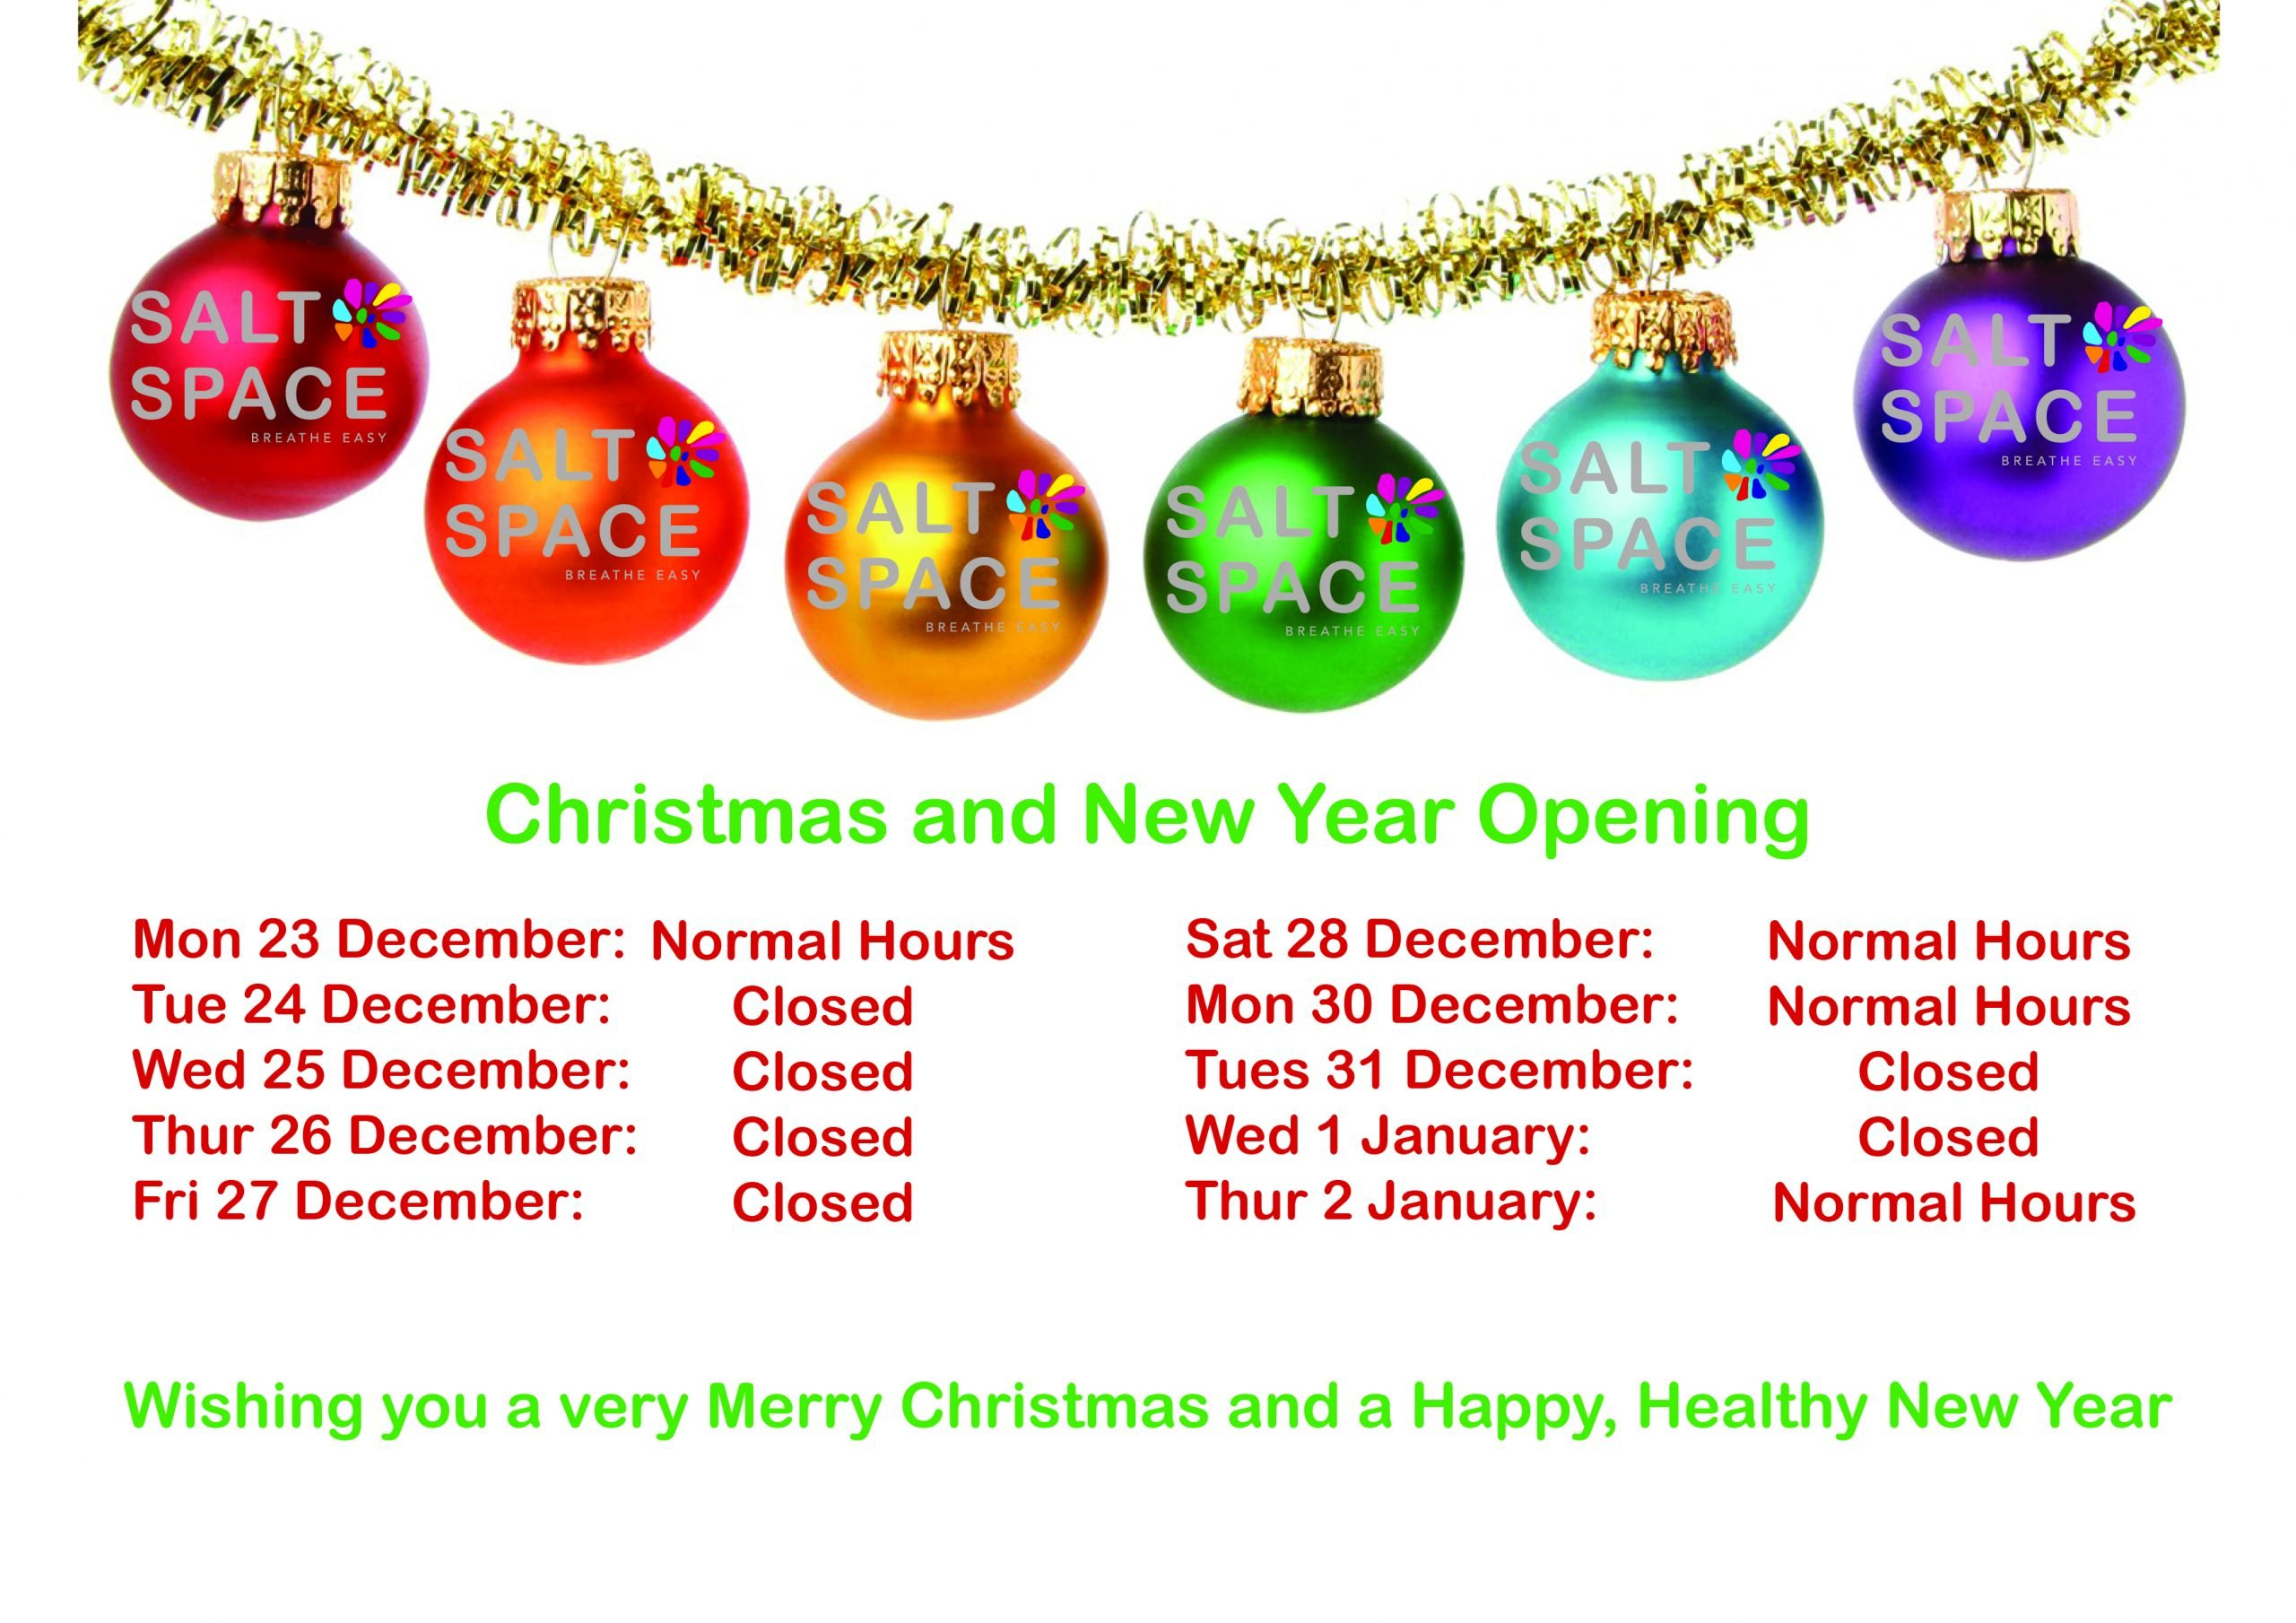 Salt Space opening times over Christmas and new year